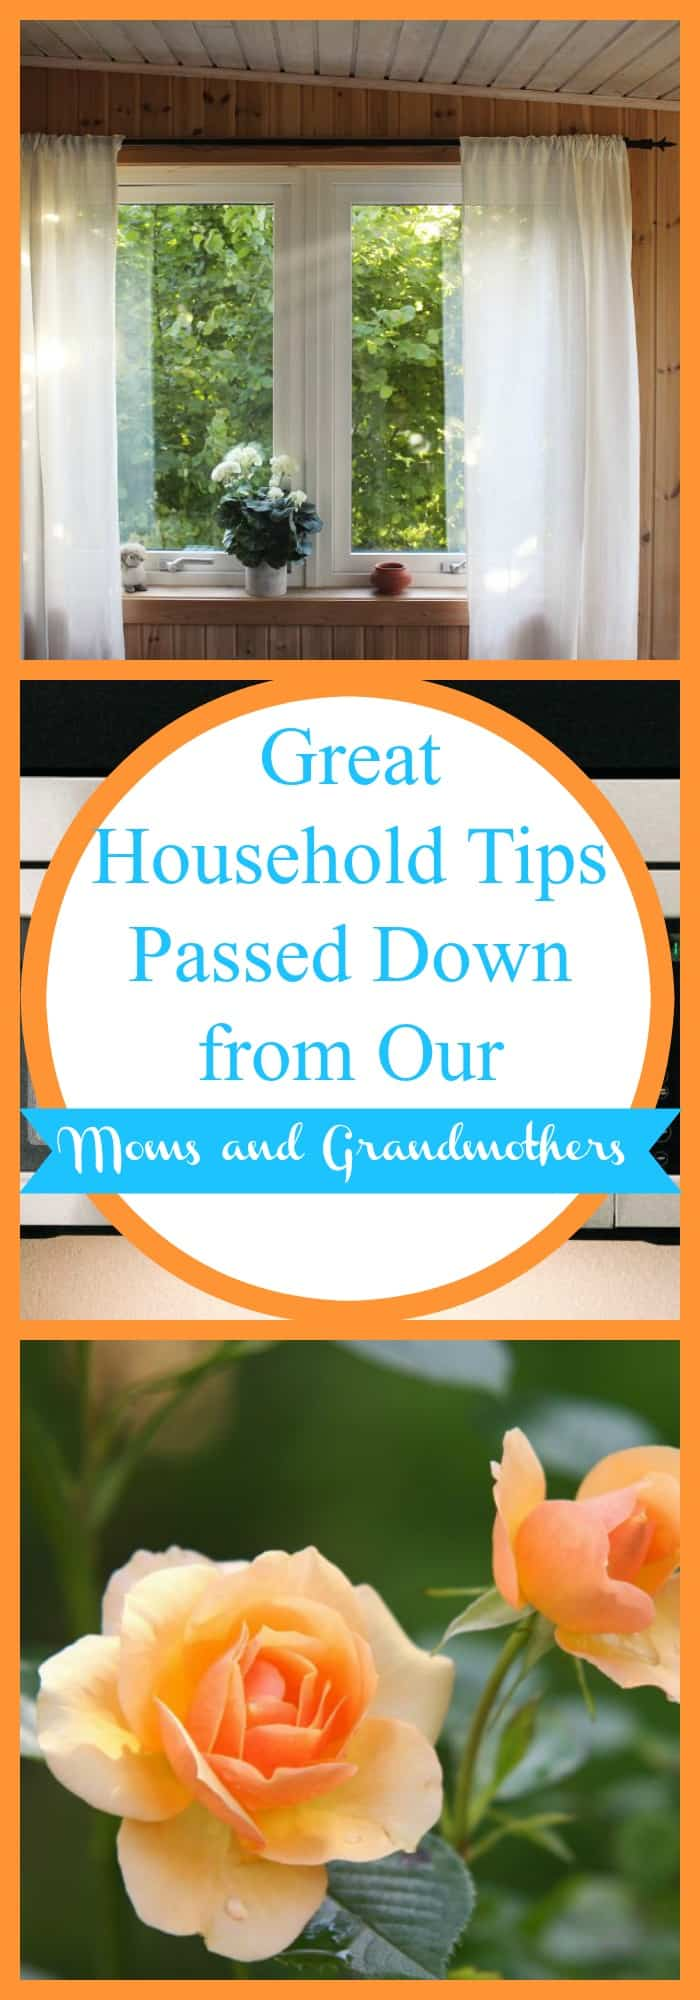 Great Household Tips Passed Down from Our Moms and Grandmothers